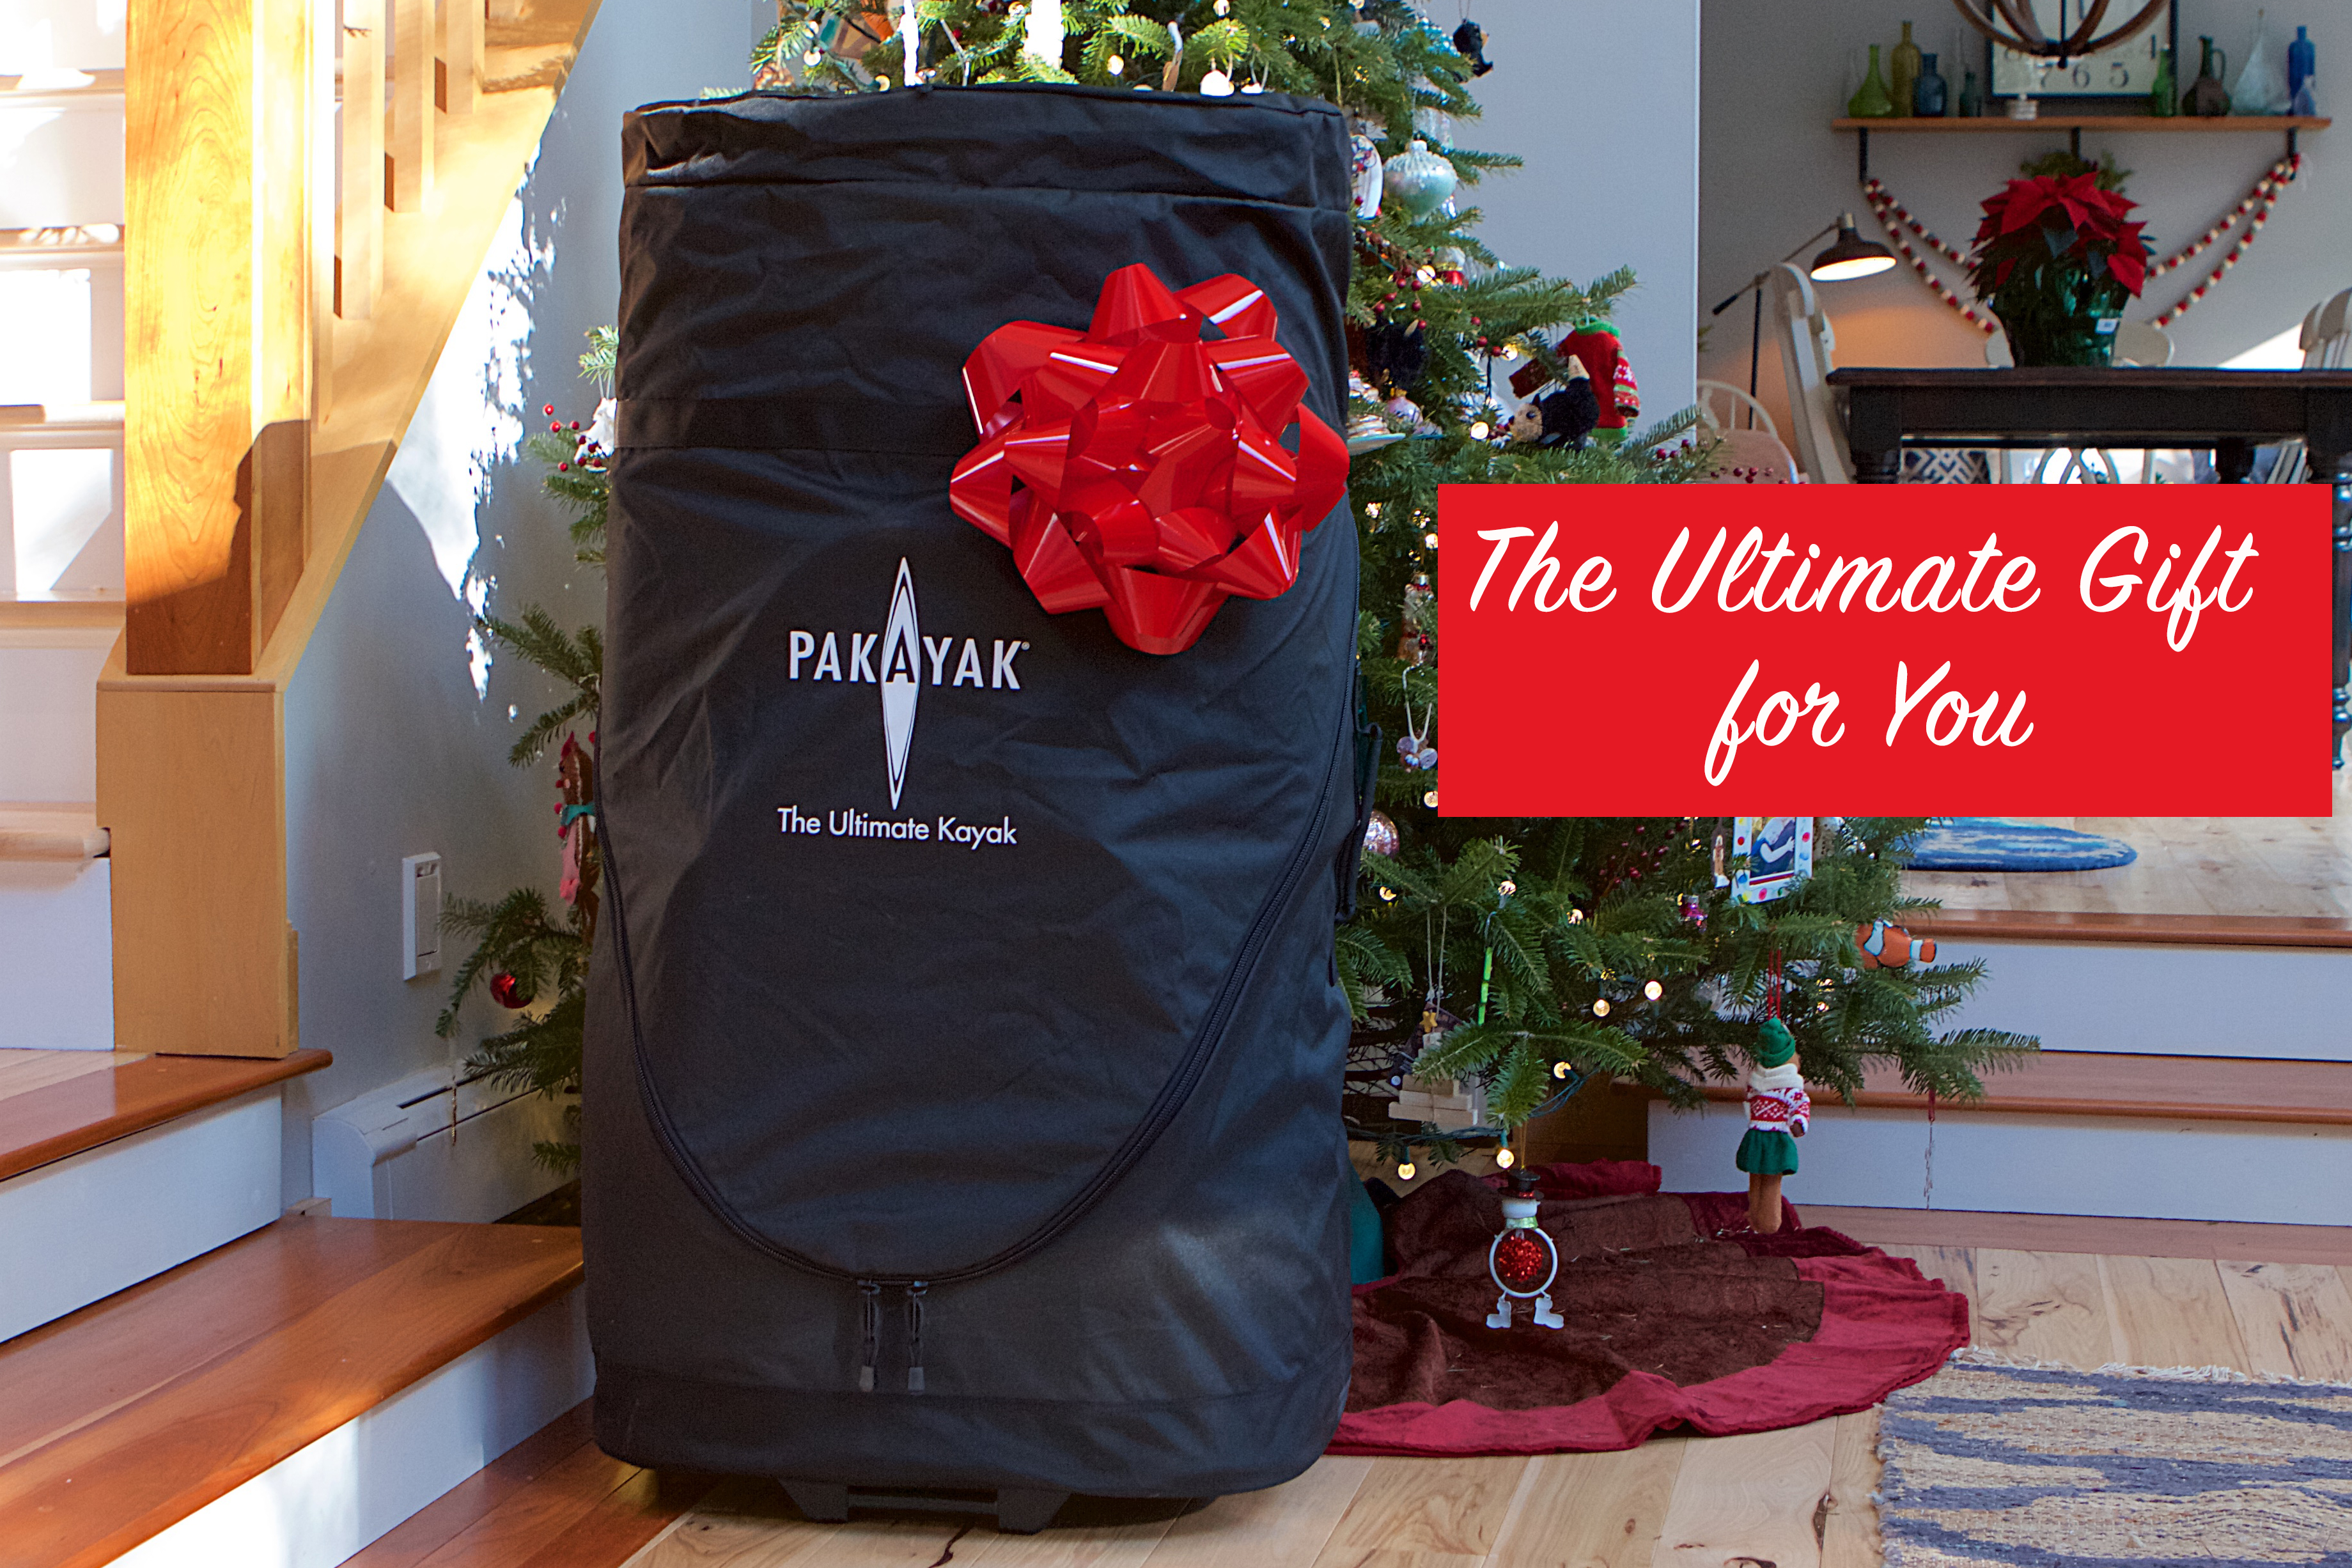 Packable kayak company looks to make splash this holiday season